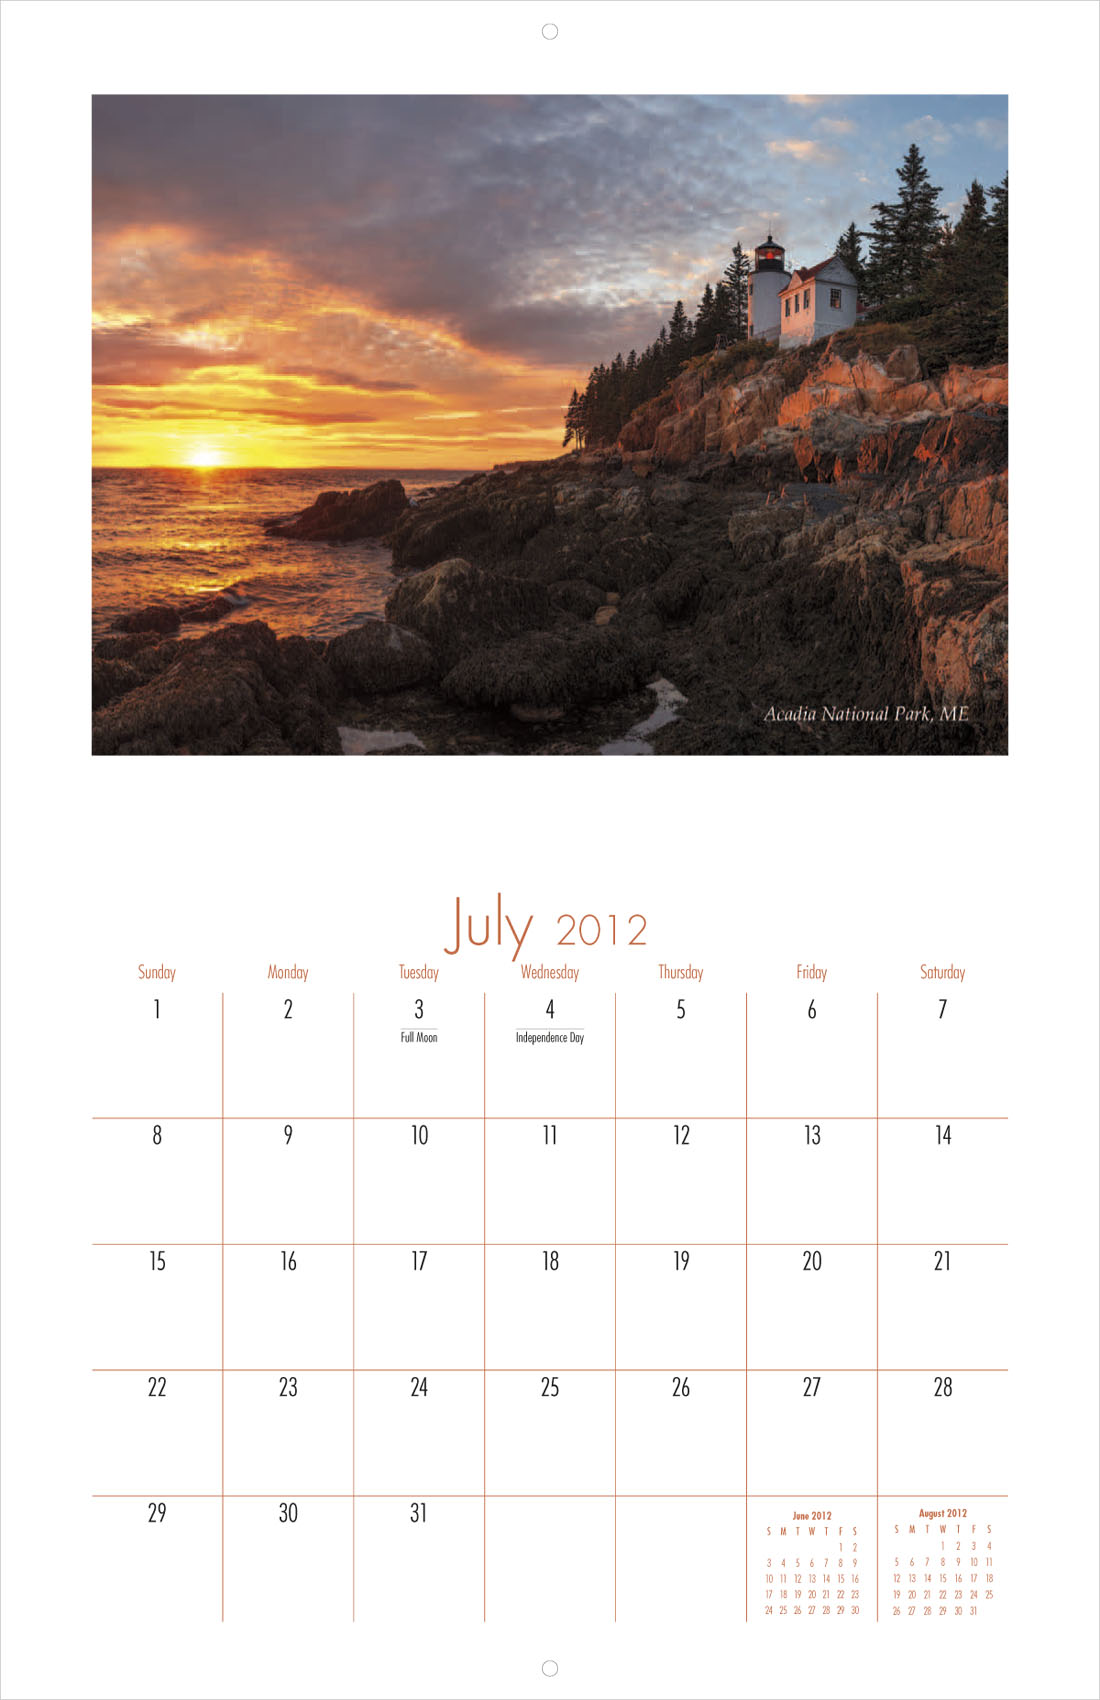 Wall Calendar Best Design Design Calendar Design Industry Events Calendar New Wall Calendar Designs Yearbox Calendars